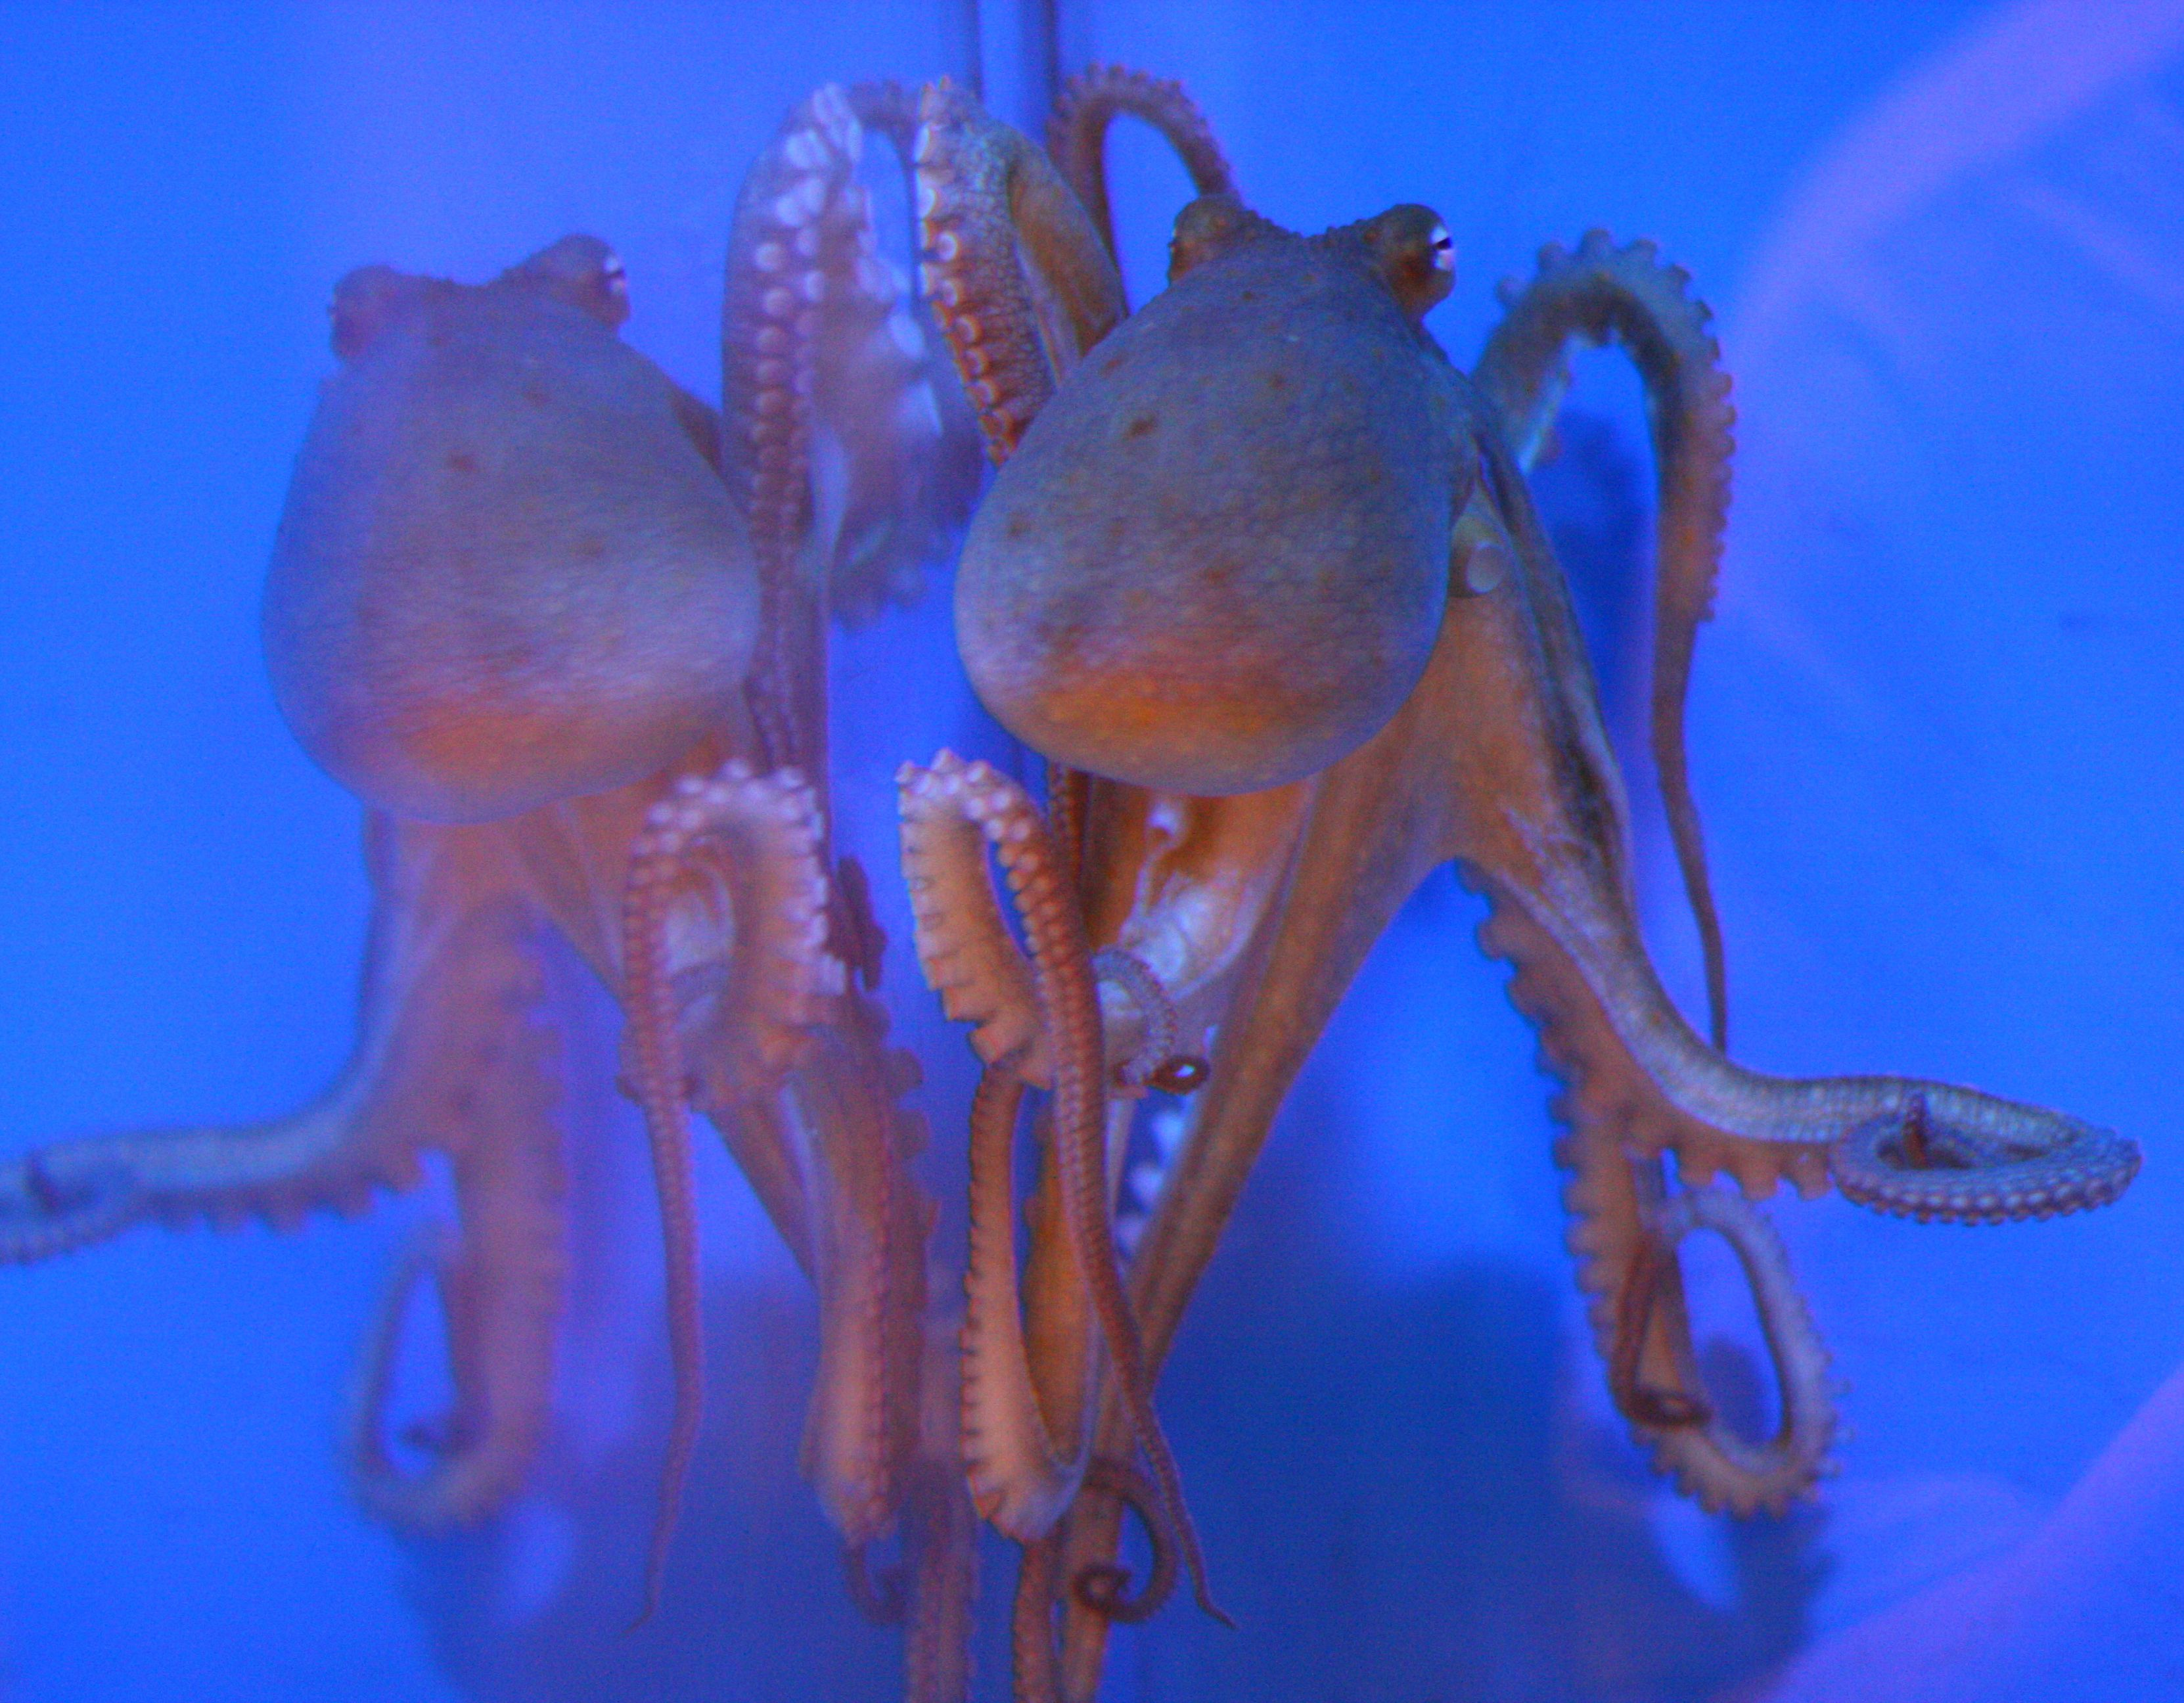 Family Genetics Study Reveals New Clues >> First Octopus Genome Sequence Reveals Clues About Camouflage And Big